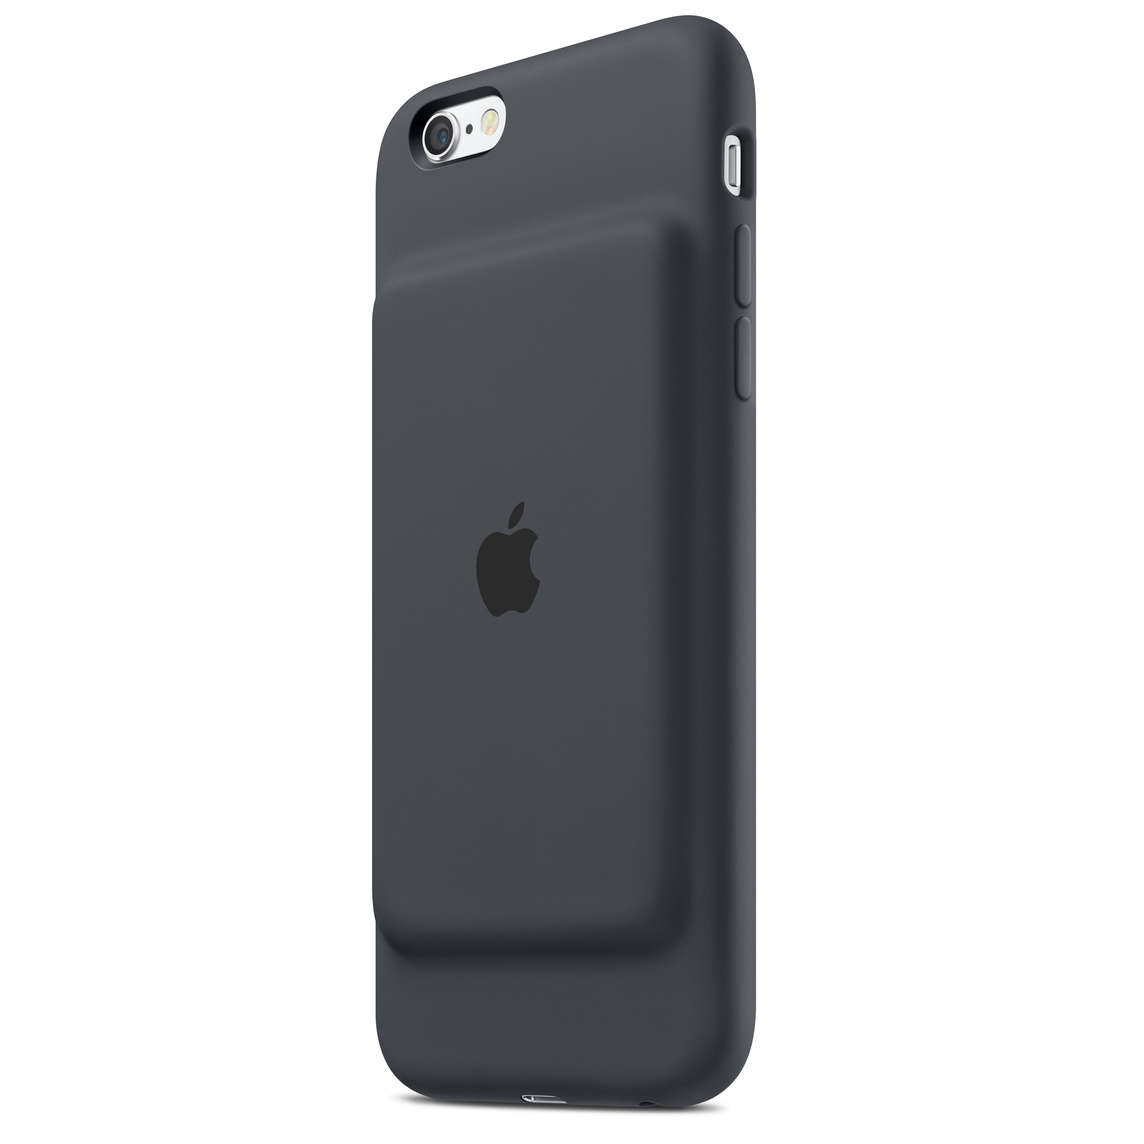 sale retailer 65fe3 4d42b iPhone 6 / 6s Smart Battery Case - Charcoal Grey